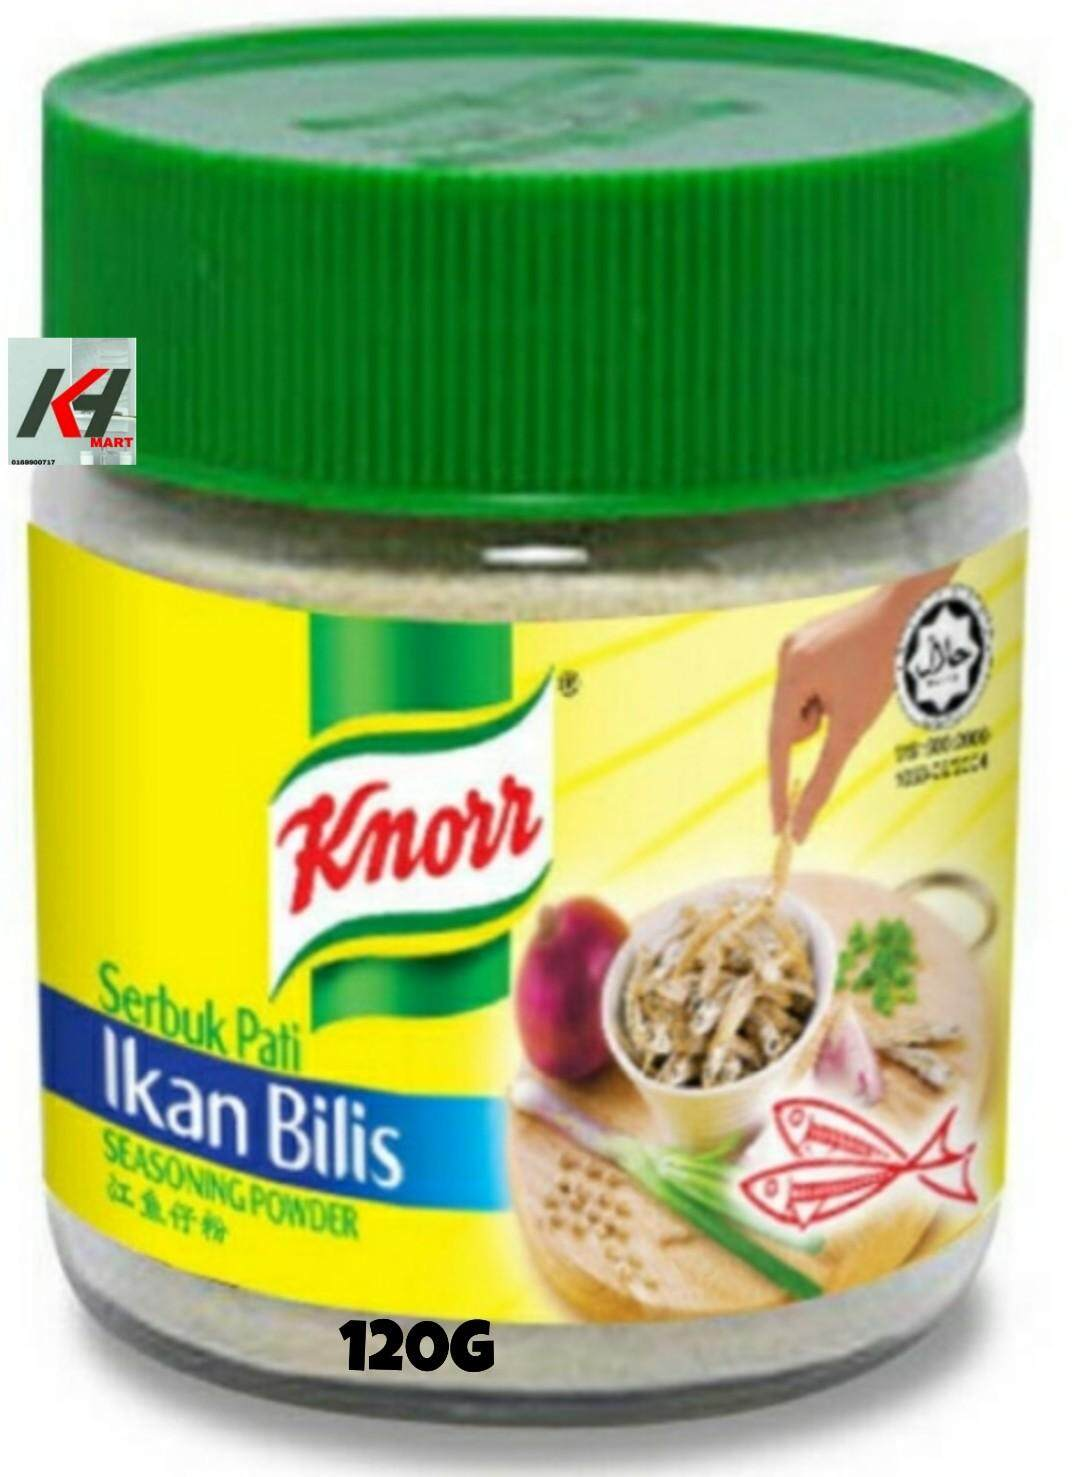 KNORR SEASONING POWDER IKAN BILIS 120G  READY STOCK